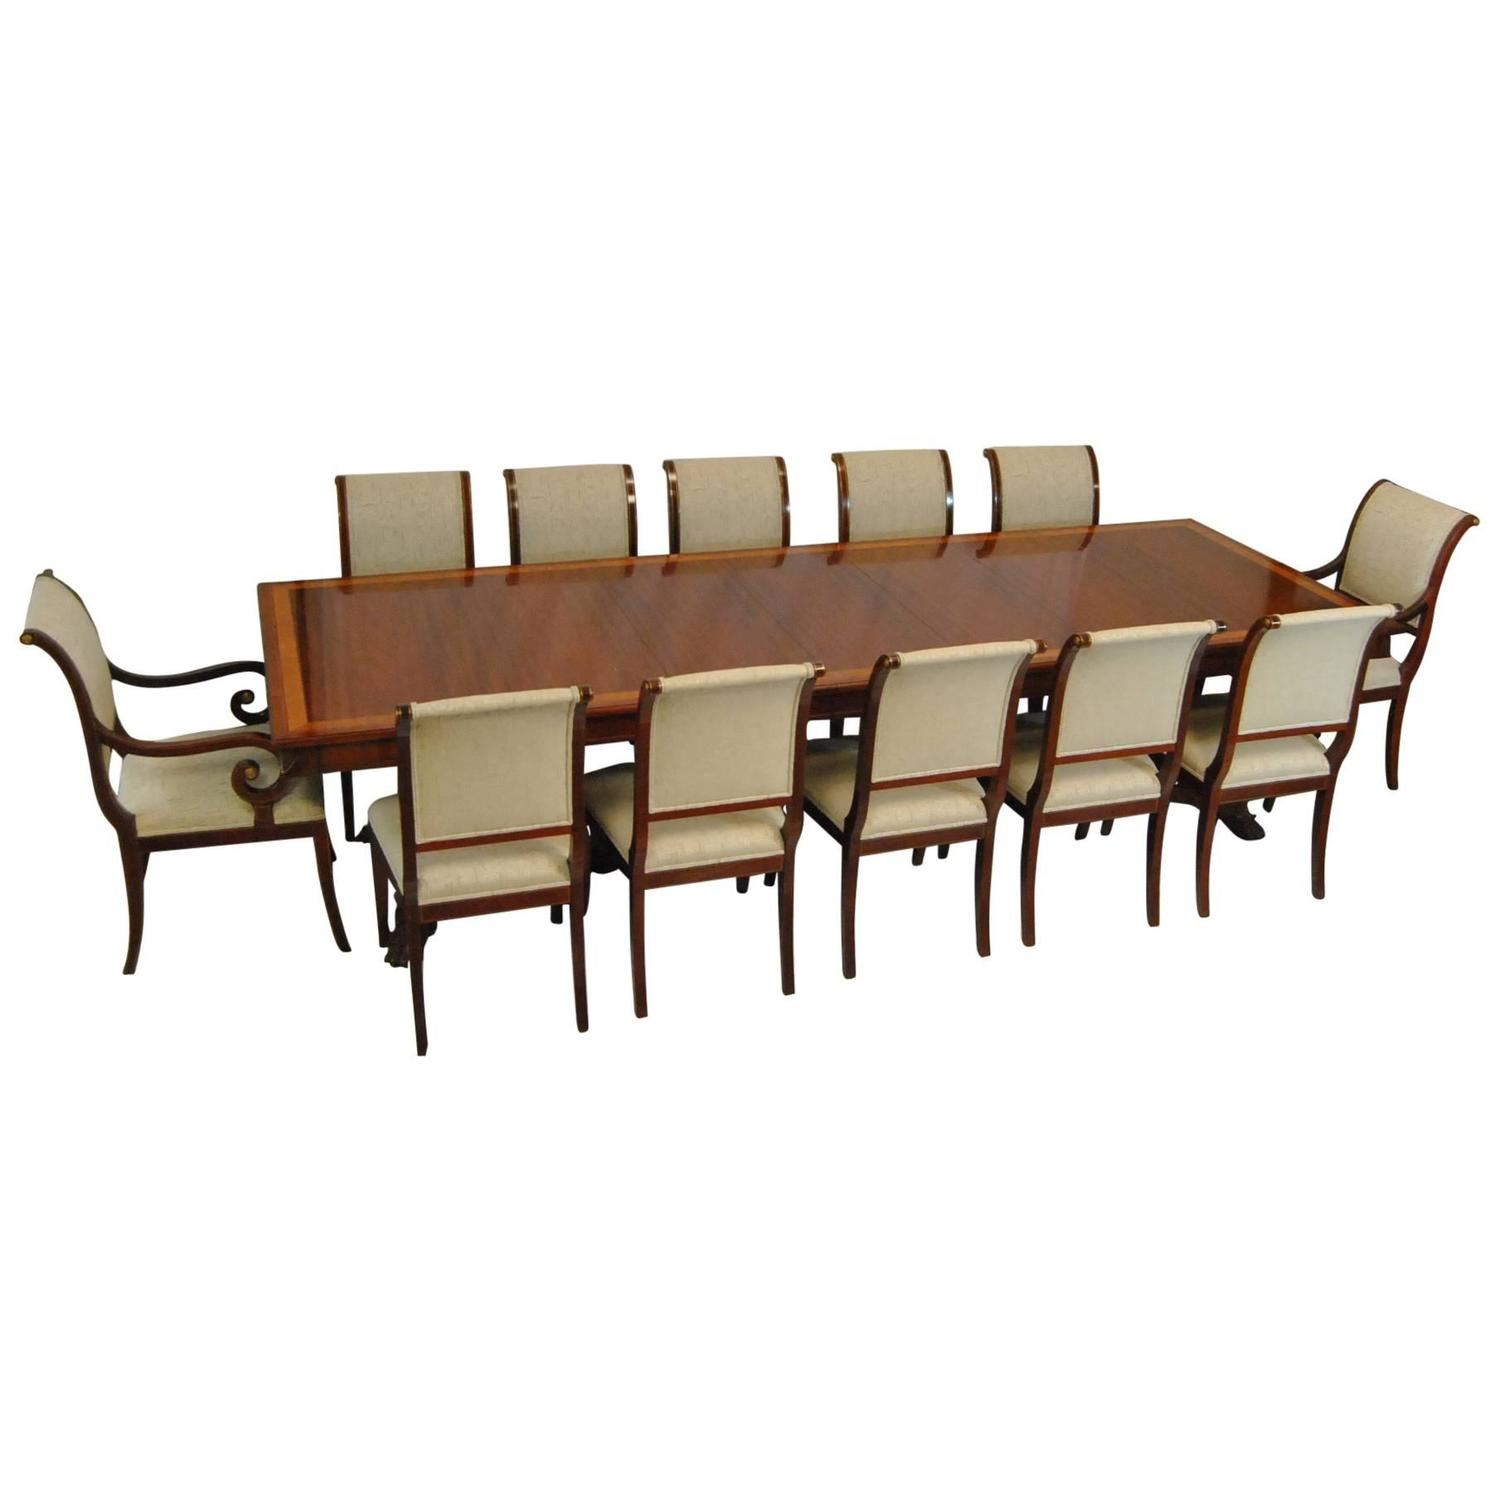 12 Chairs Mahogany Dining Table And 12 Chairs By Kindel Neoclassic